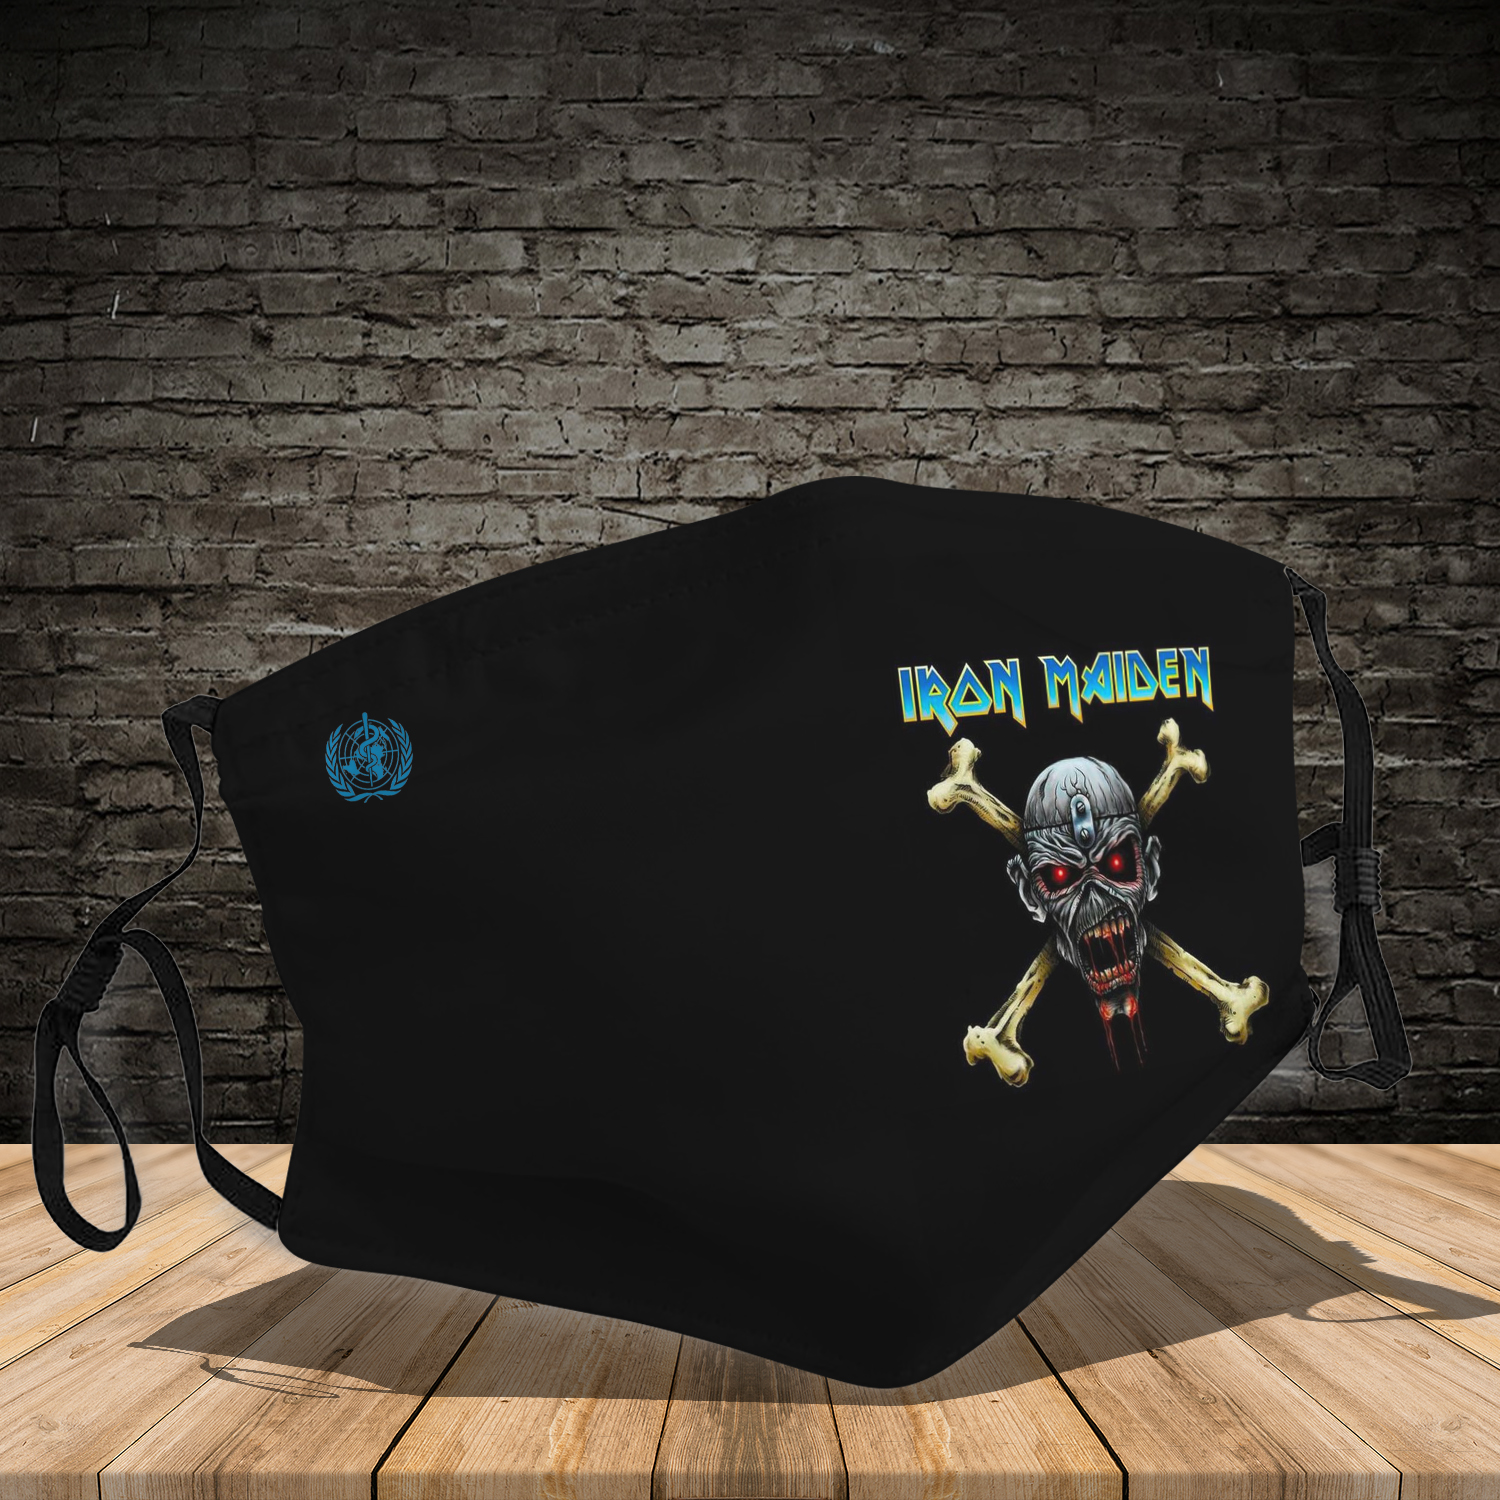 Rock band iron maiden full printing face mask 3